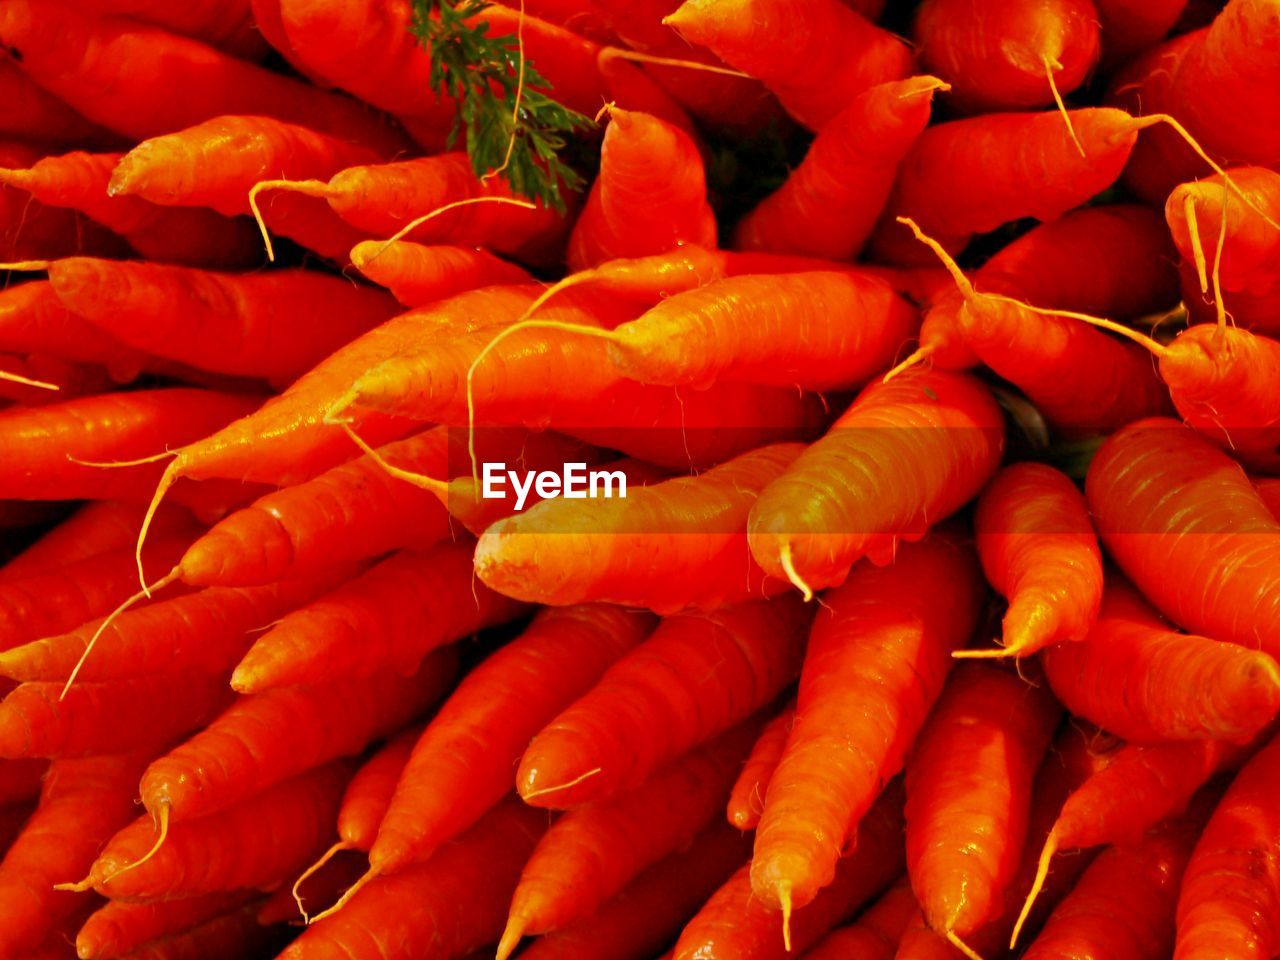 full frame, backgrounds, freshness, food and drink, large group of objects, food, red, abundance, market, retail, for sale, wellbeing, healthy eating, vegetable, close-up, orange color, root vegetable, no people, market stall, raw food, sale, retail display, consumerism